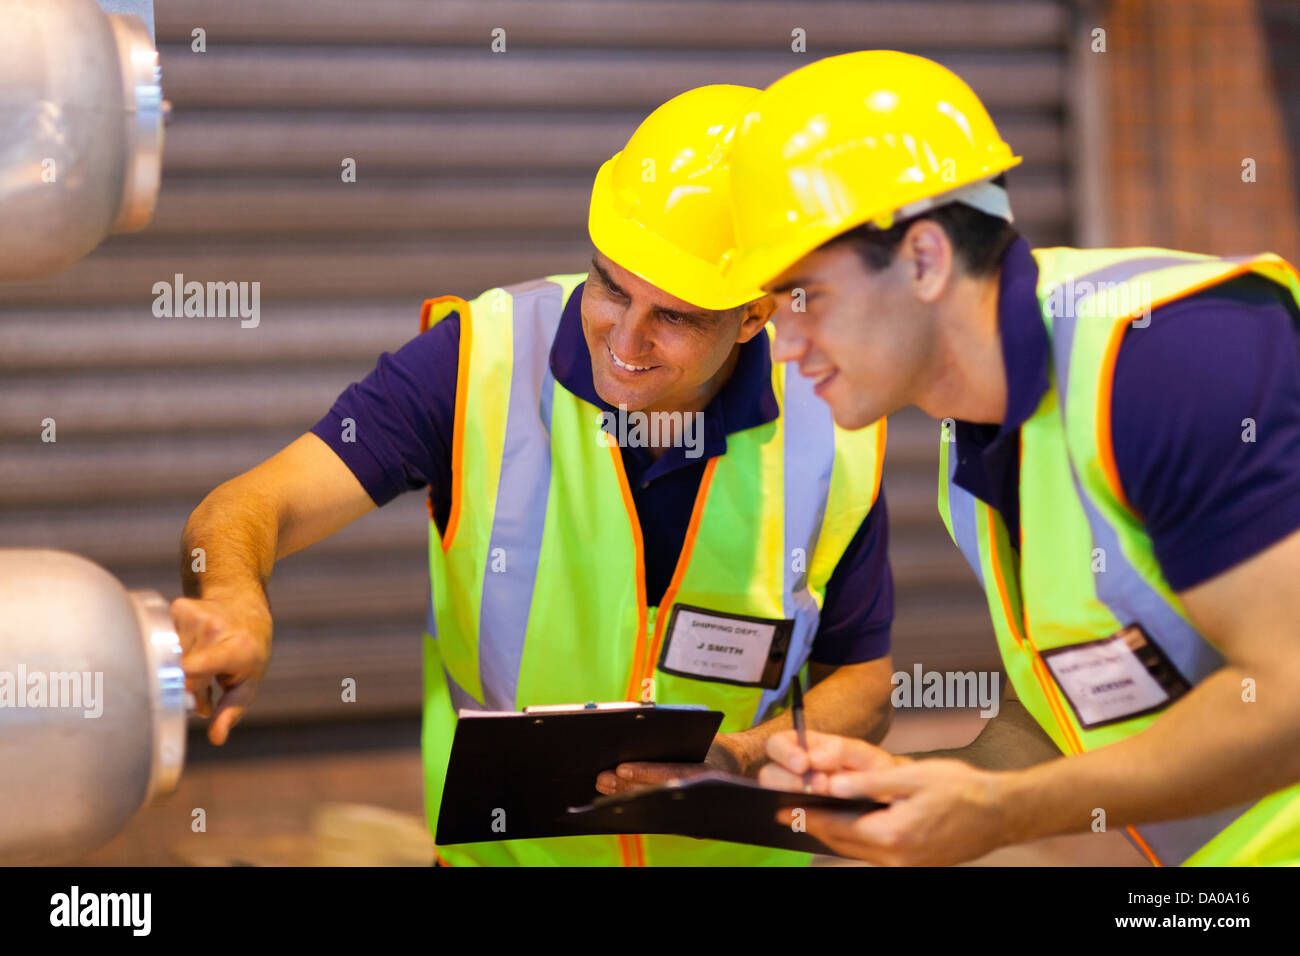 warehouse co-workers in safety gear inspecting machinery - Stock Image